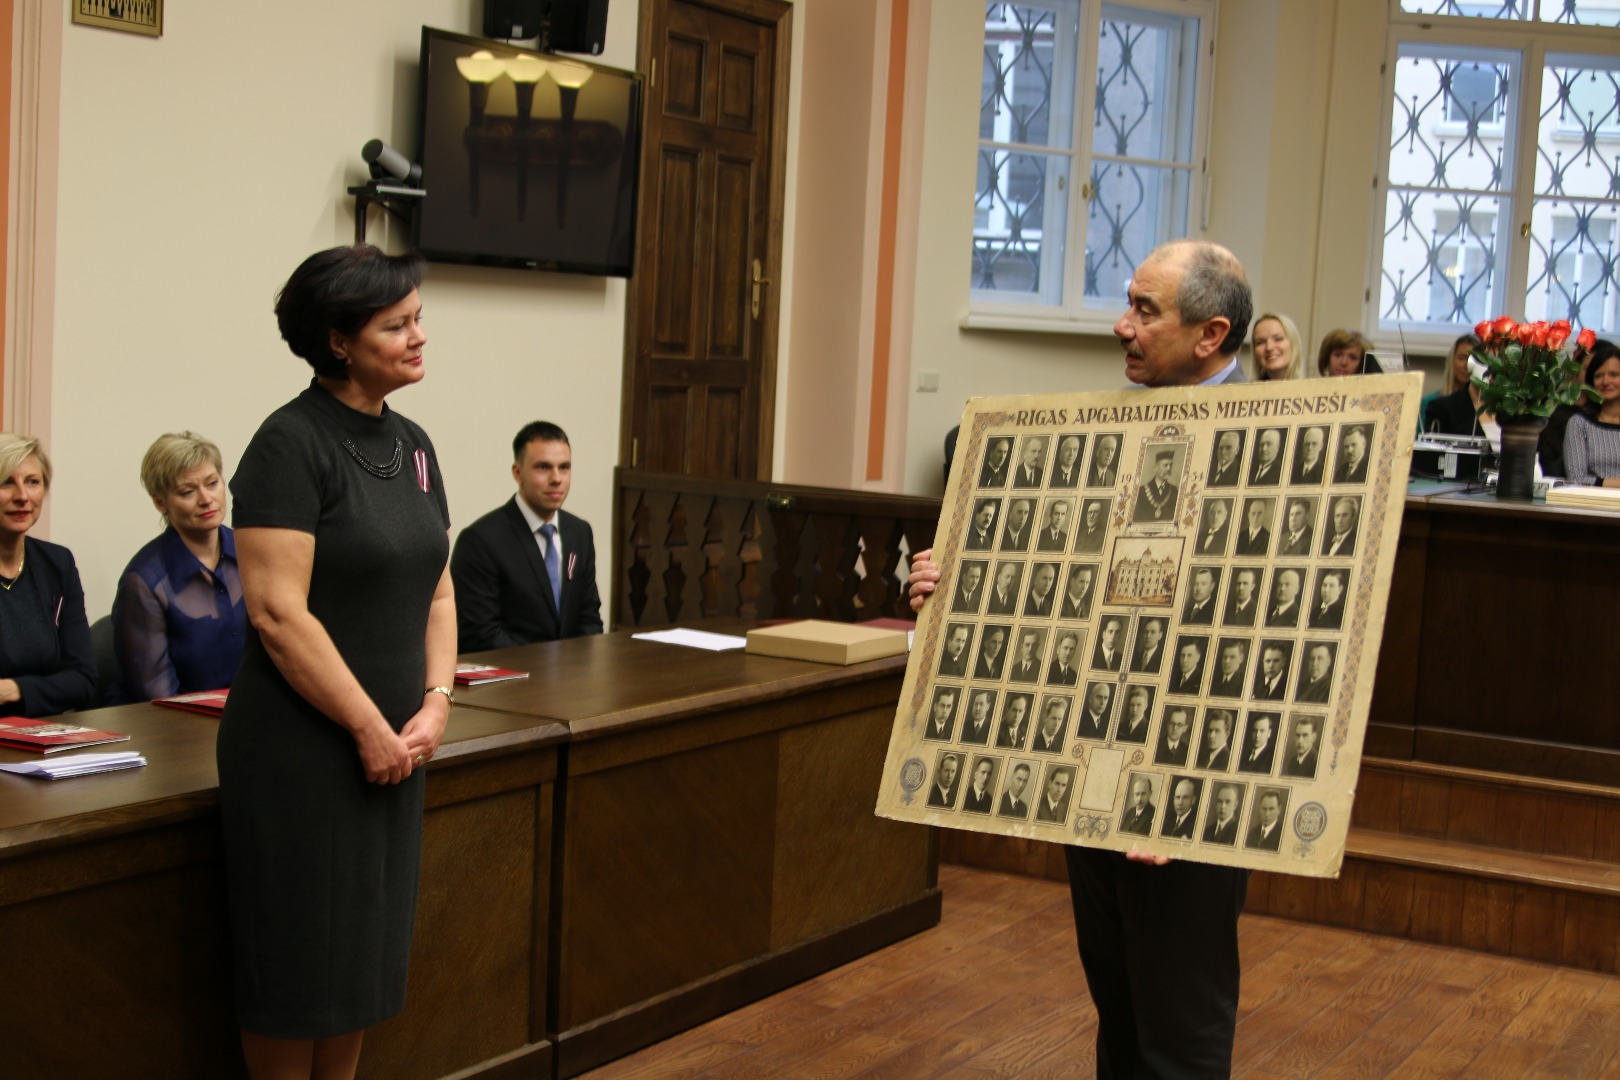 10.11.2016. At the solemn meeting dedicated to Latvian Independence Day in Riga Regional Court the Chief Justice of the Supreme Court presented a gift - a historical photo stand about the magistrates who strengthened the rule of law during the first period of Latvian independence. Original stand that currently has more than 80 years of history, was found when the Supreme Court operate in the premises of Regional Court and it was stored in the museum of the Supreme Court. Now, when Riga Regional Court established its own museum photo-stand has being returned to its true heirs.